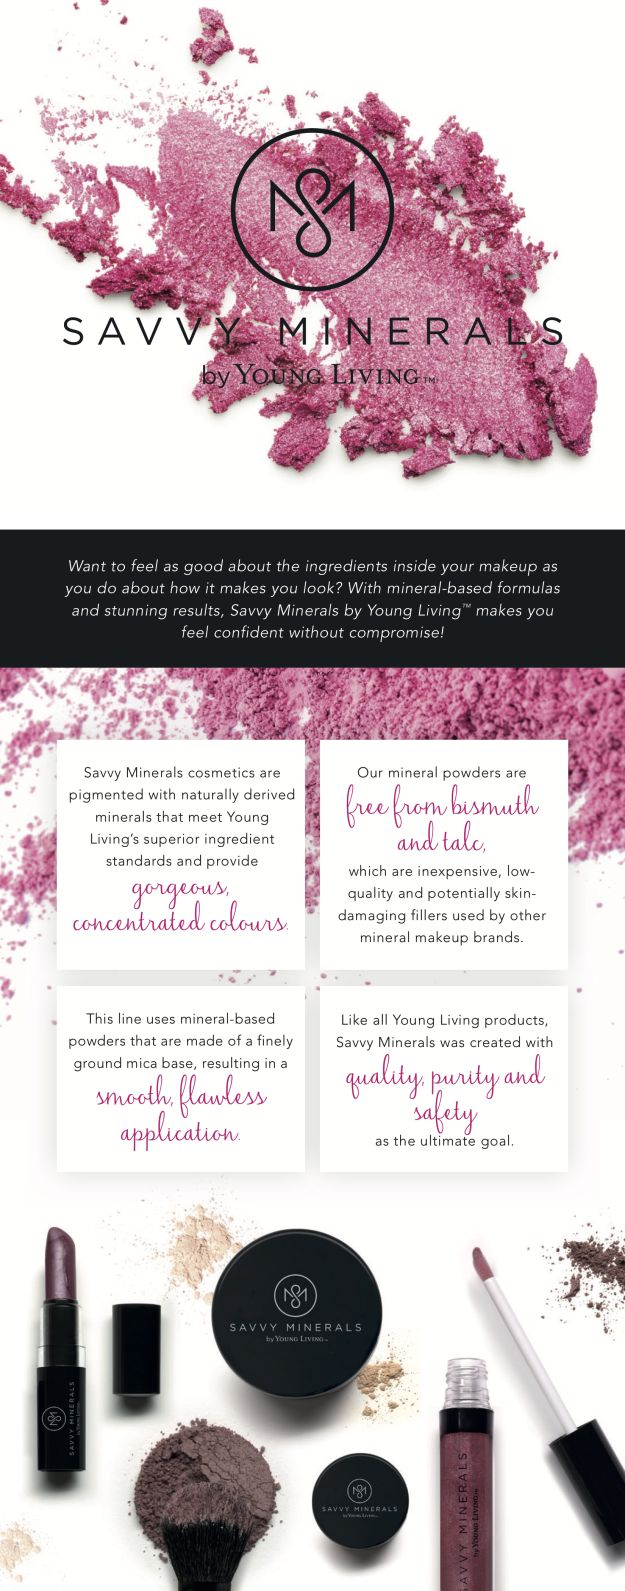 49 Best Savvy Minerals By Young Living Images On Pinterest Savvy